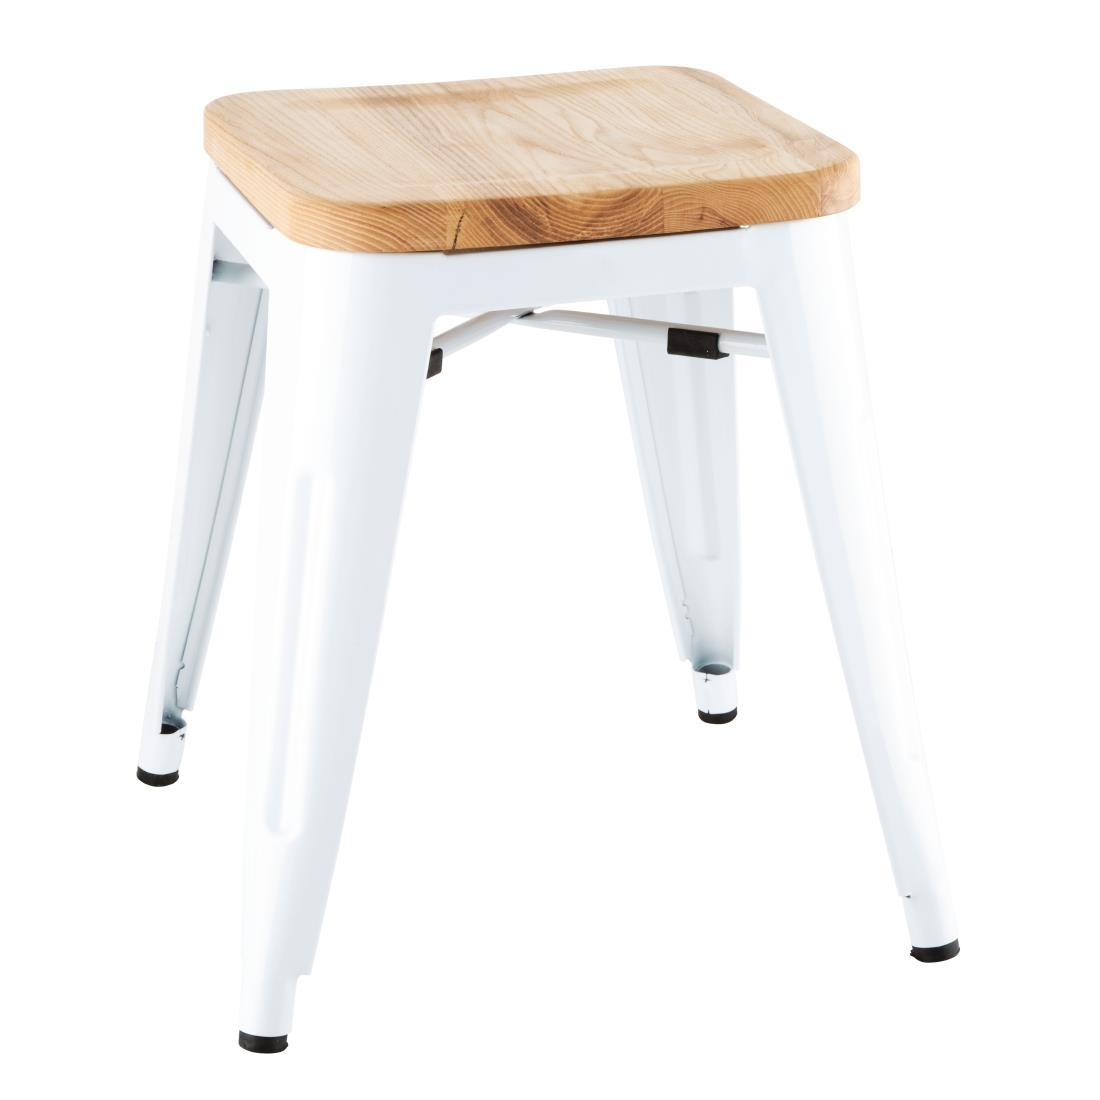 Image of Bolero Bistro Low Stools with Wooden Seatpad White (Pack of 4) Pack of 4